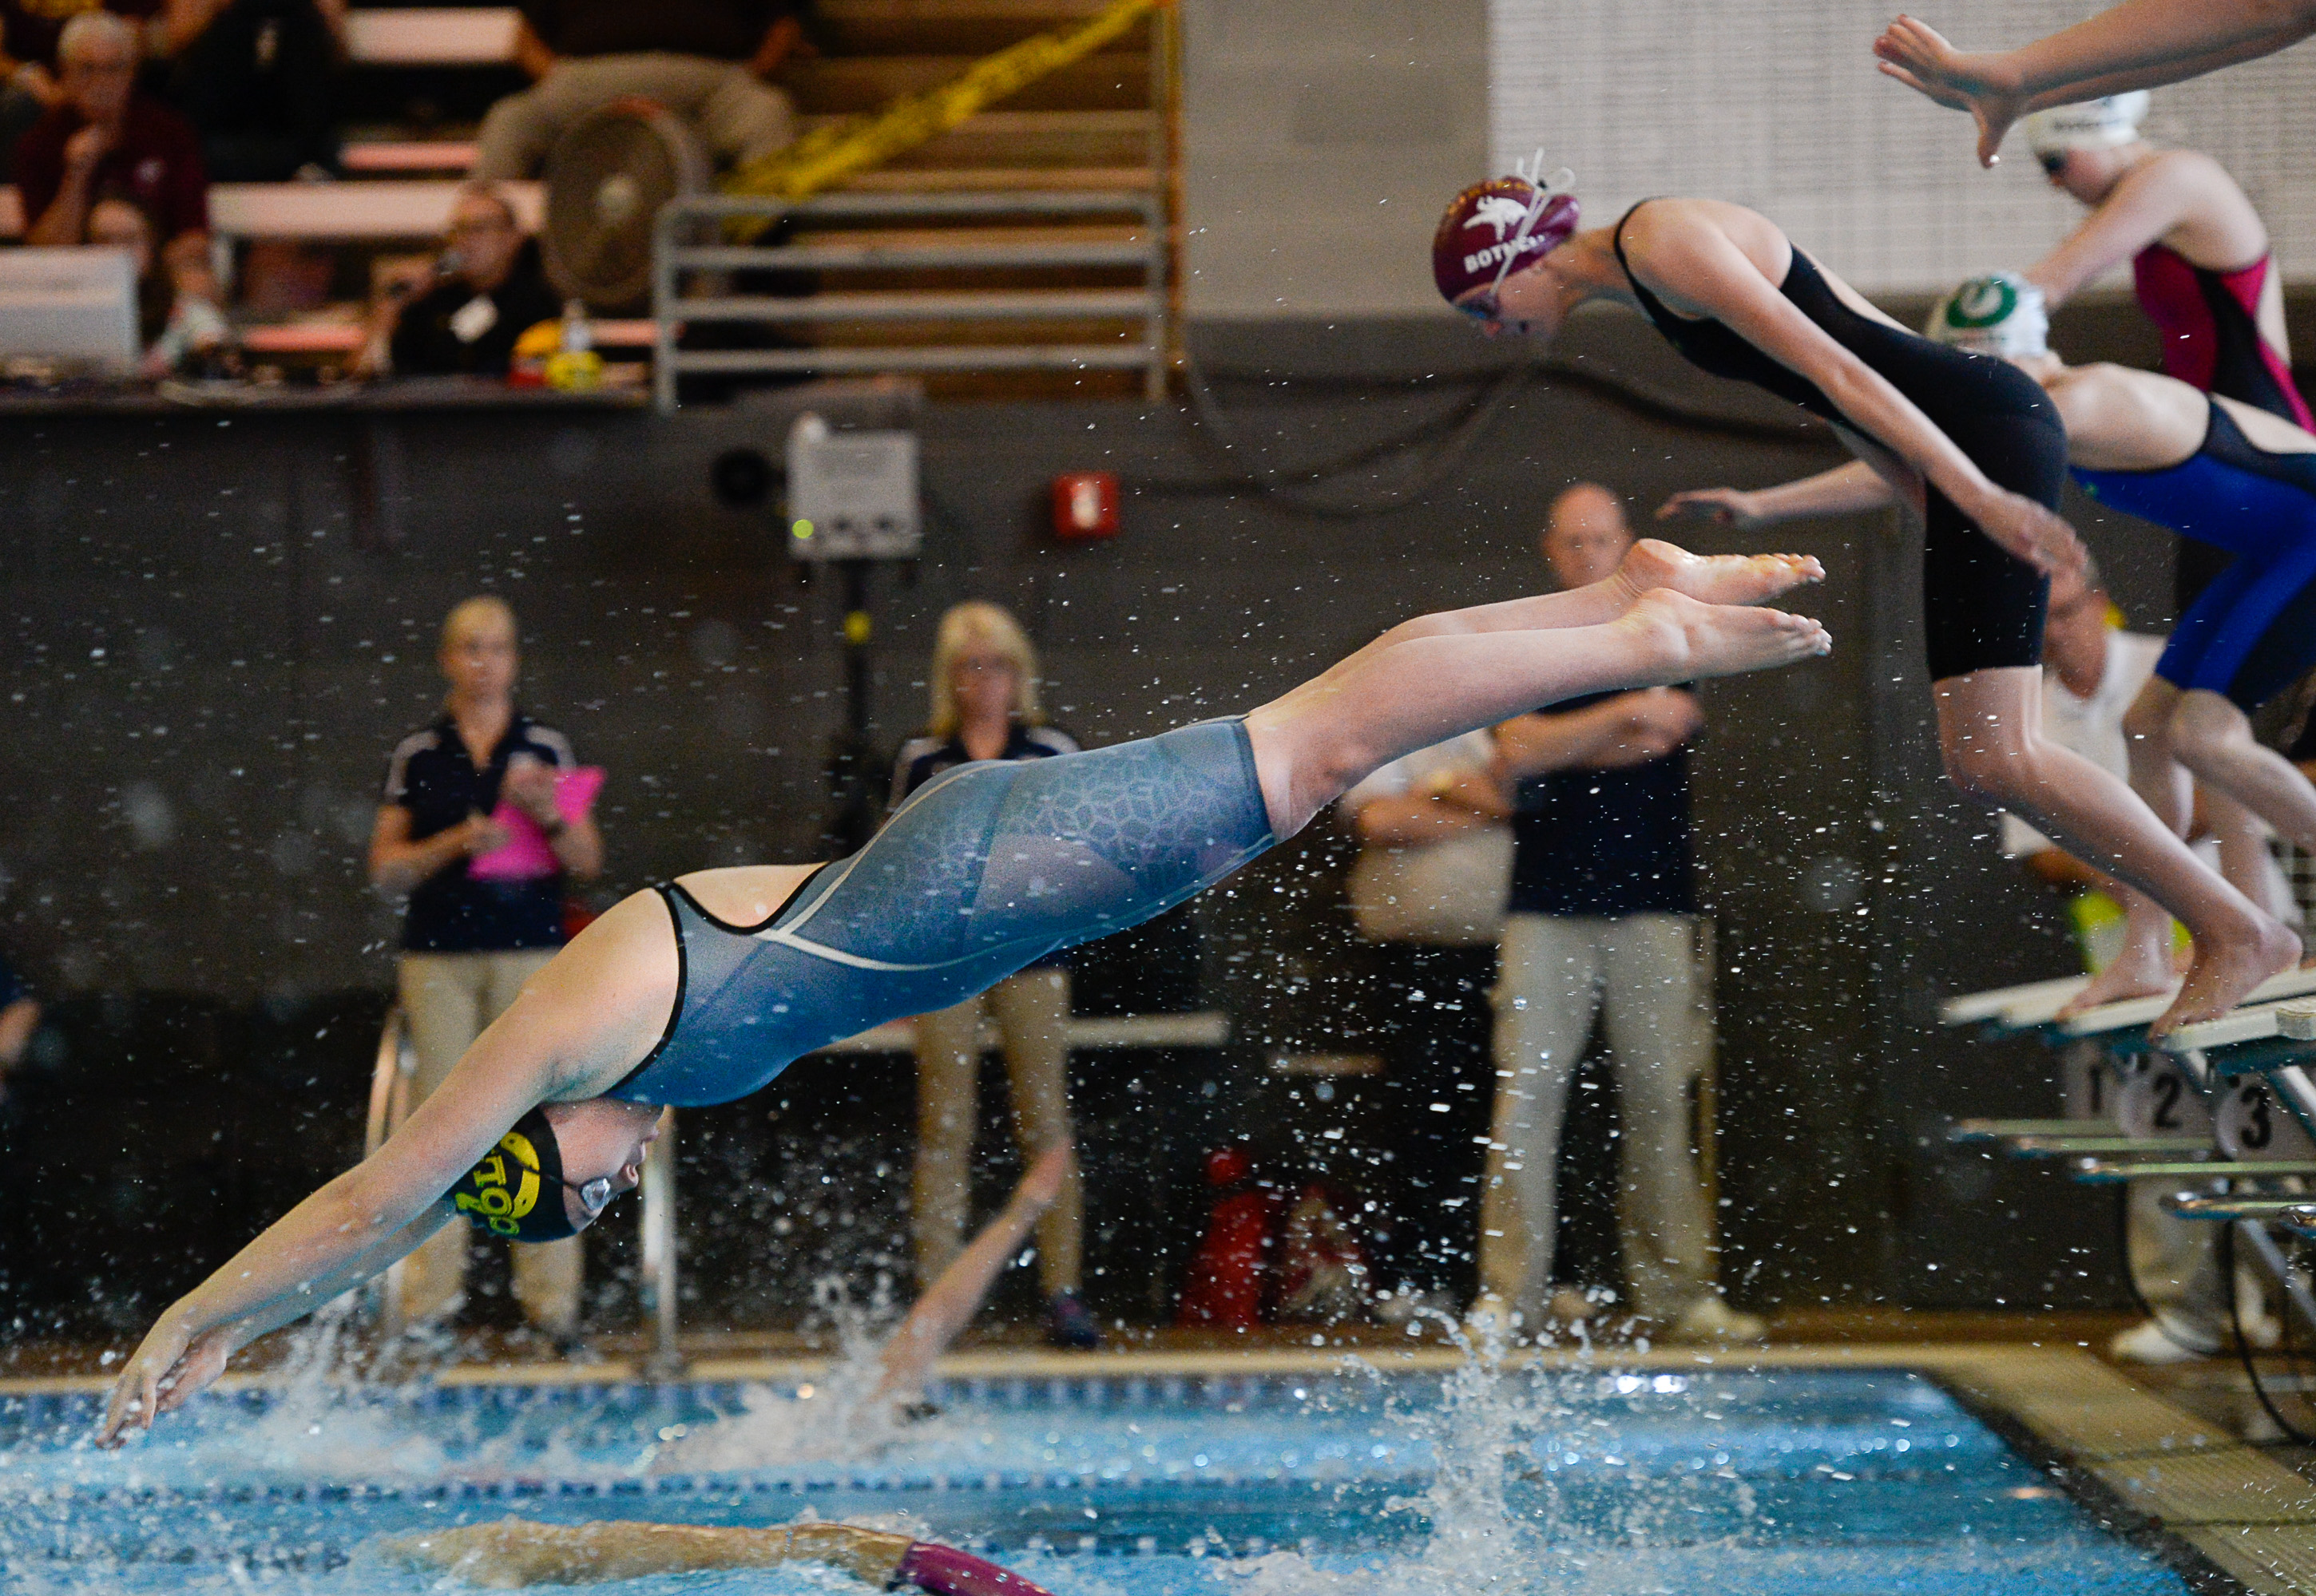 (Francisco Kjolseth  |  The Salt Lake Tribune)  Women compete in the 200 Yard Medley Relay at the high school swimming 5A State Championships in Bountiful, Friday February 9, 2018.